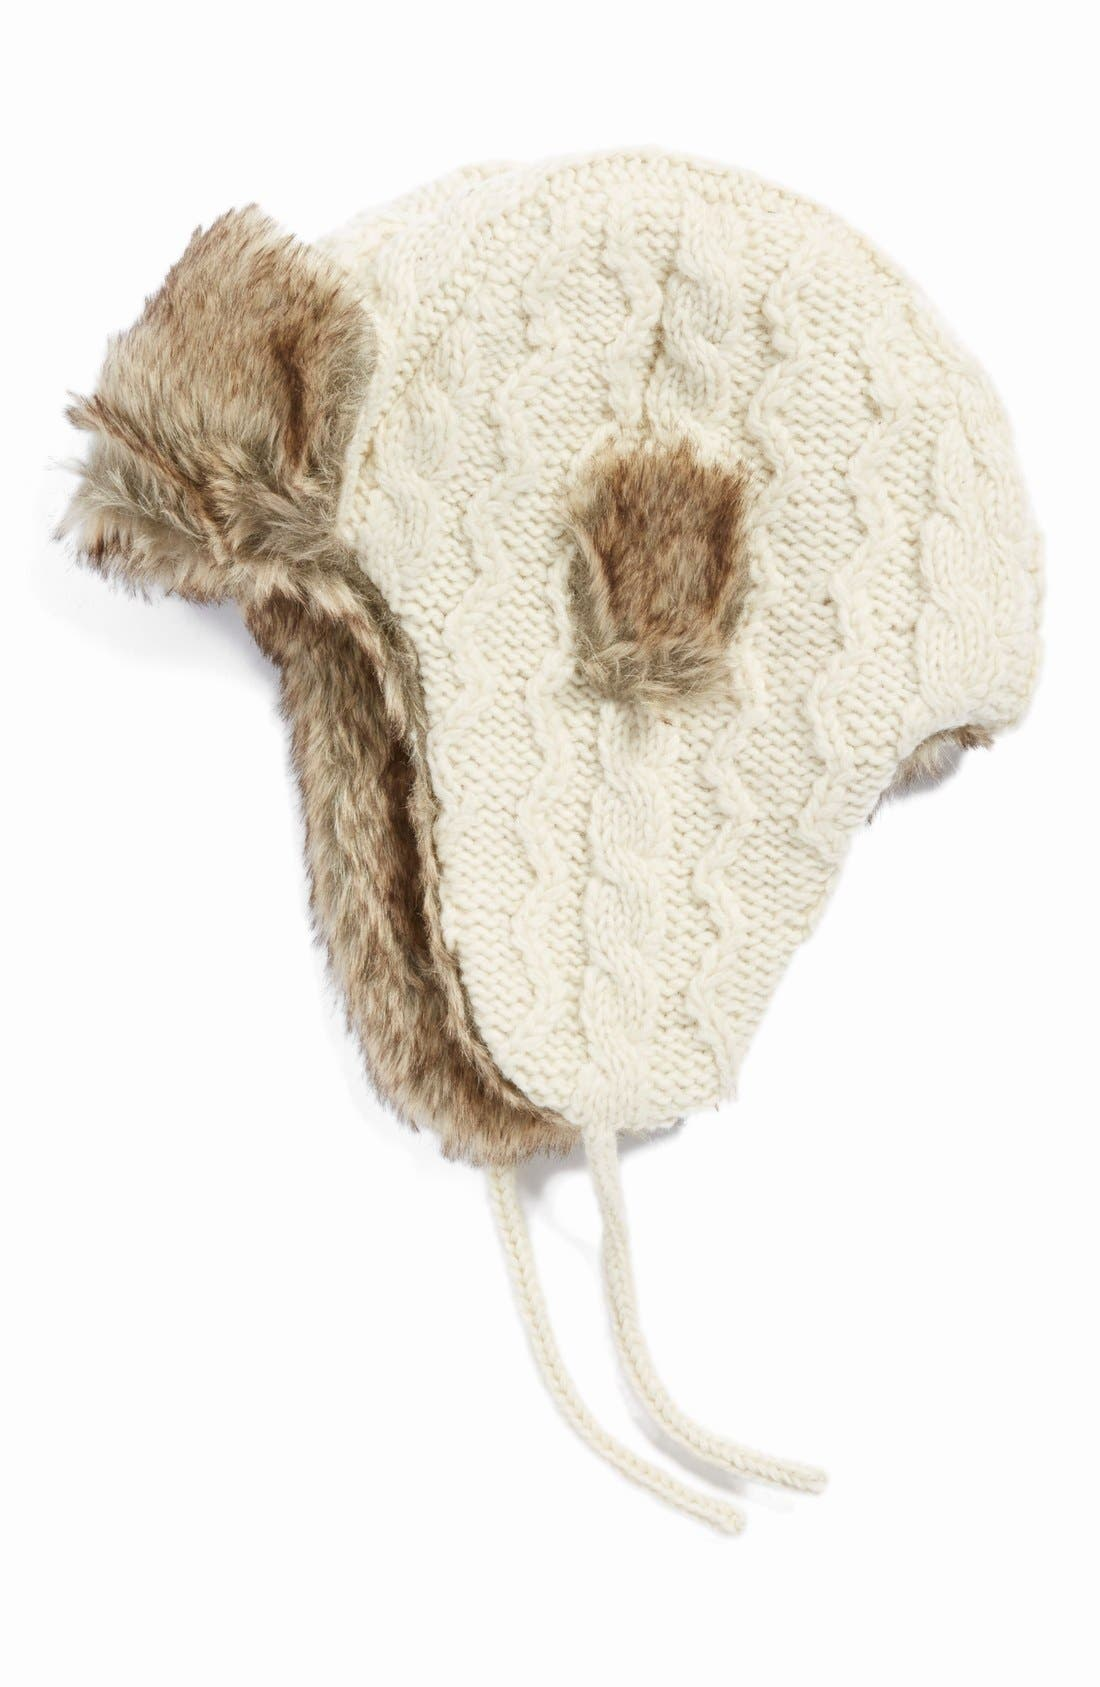 Nirvanna Designs Cable Knit Ear Flap Hat with Faux Fur Trim,                         Main,                         color, White